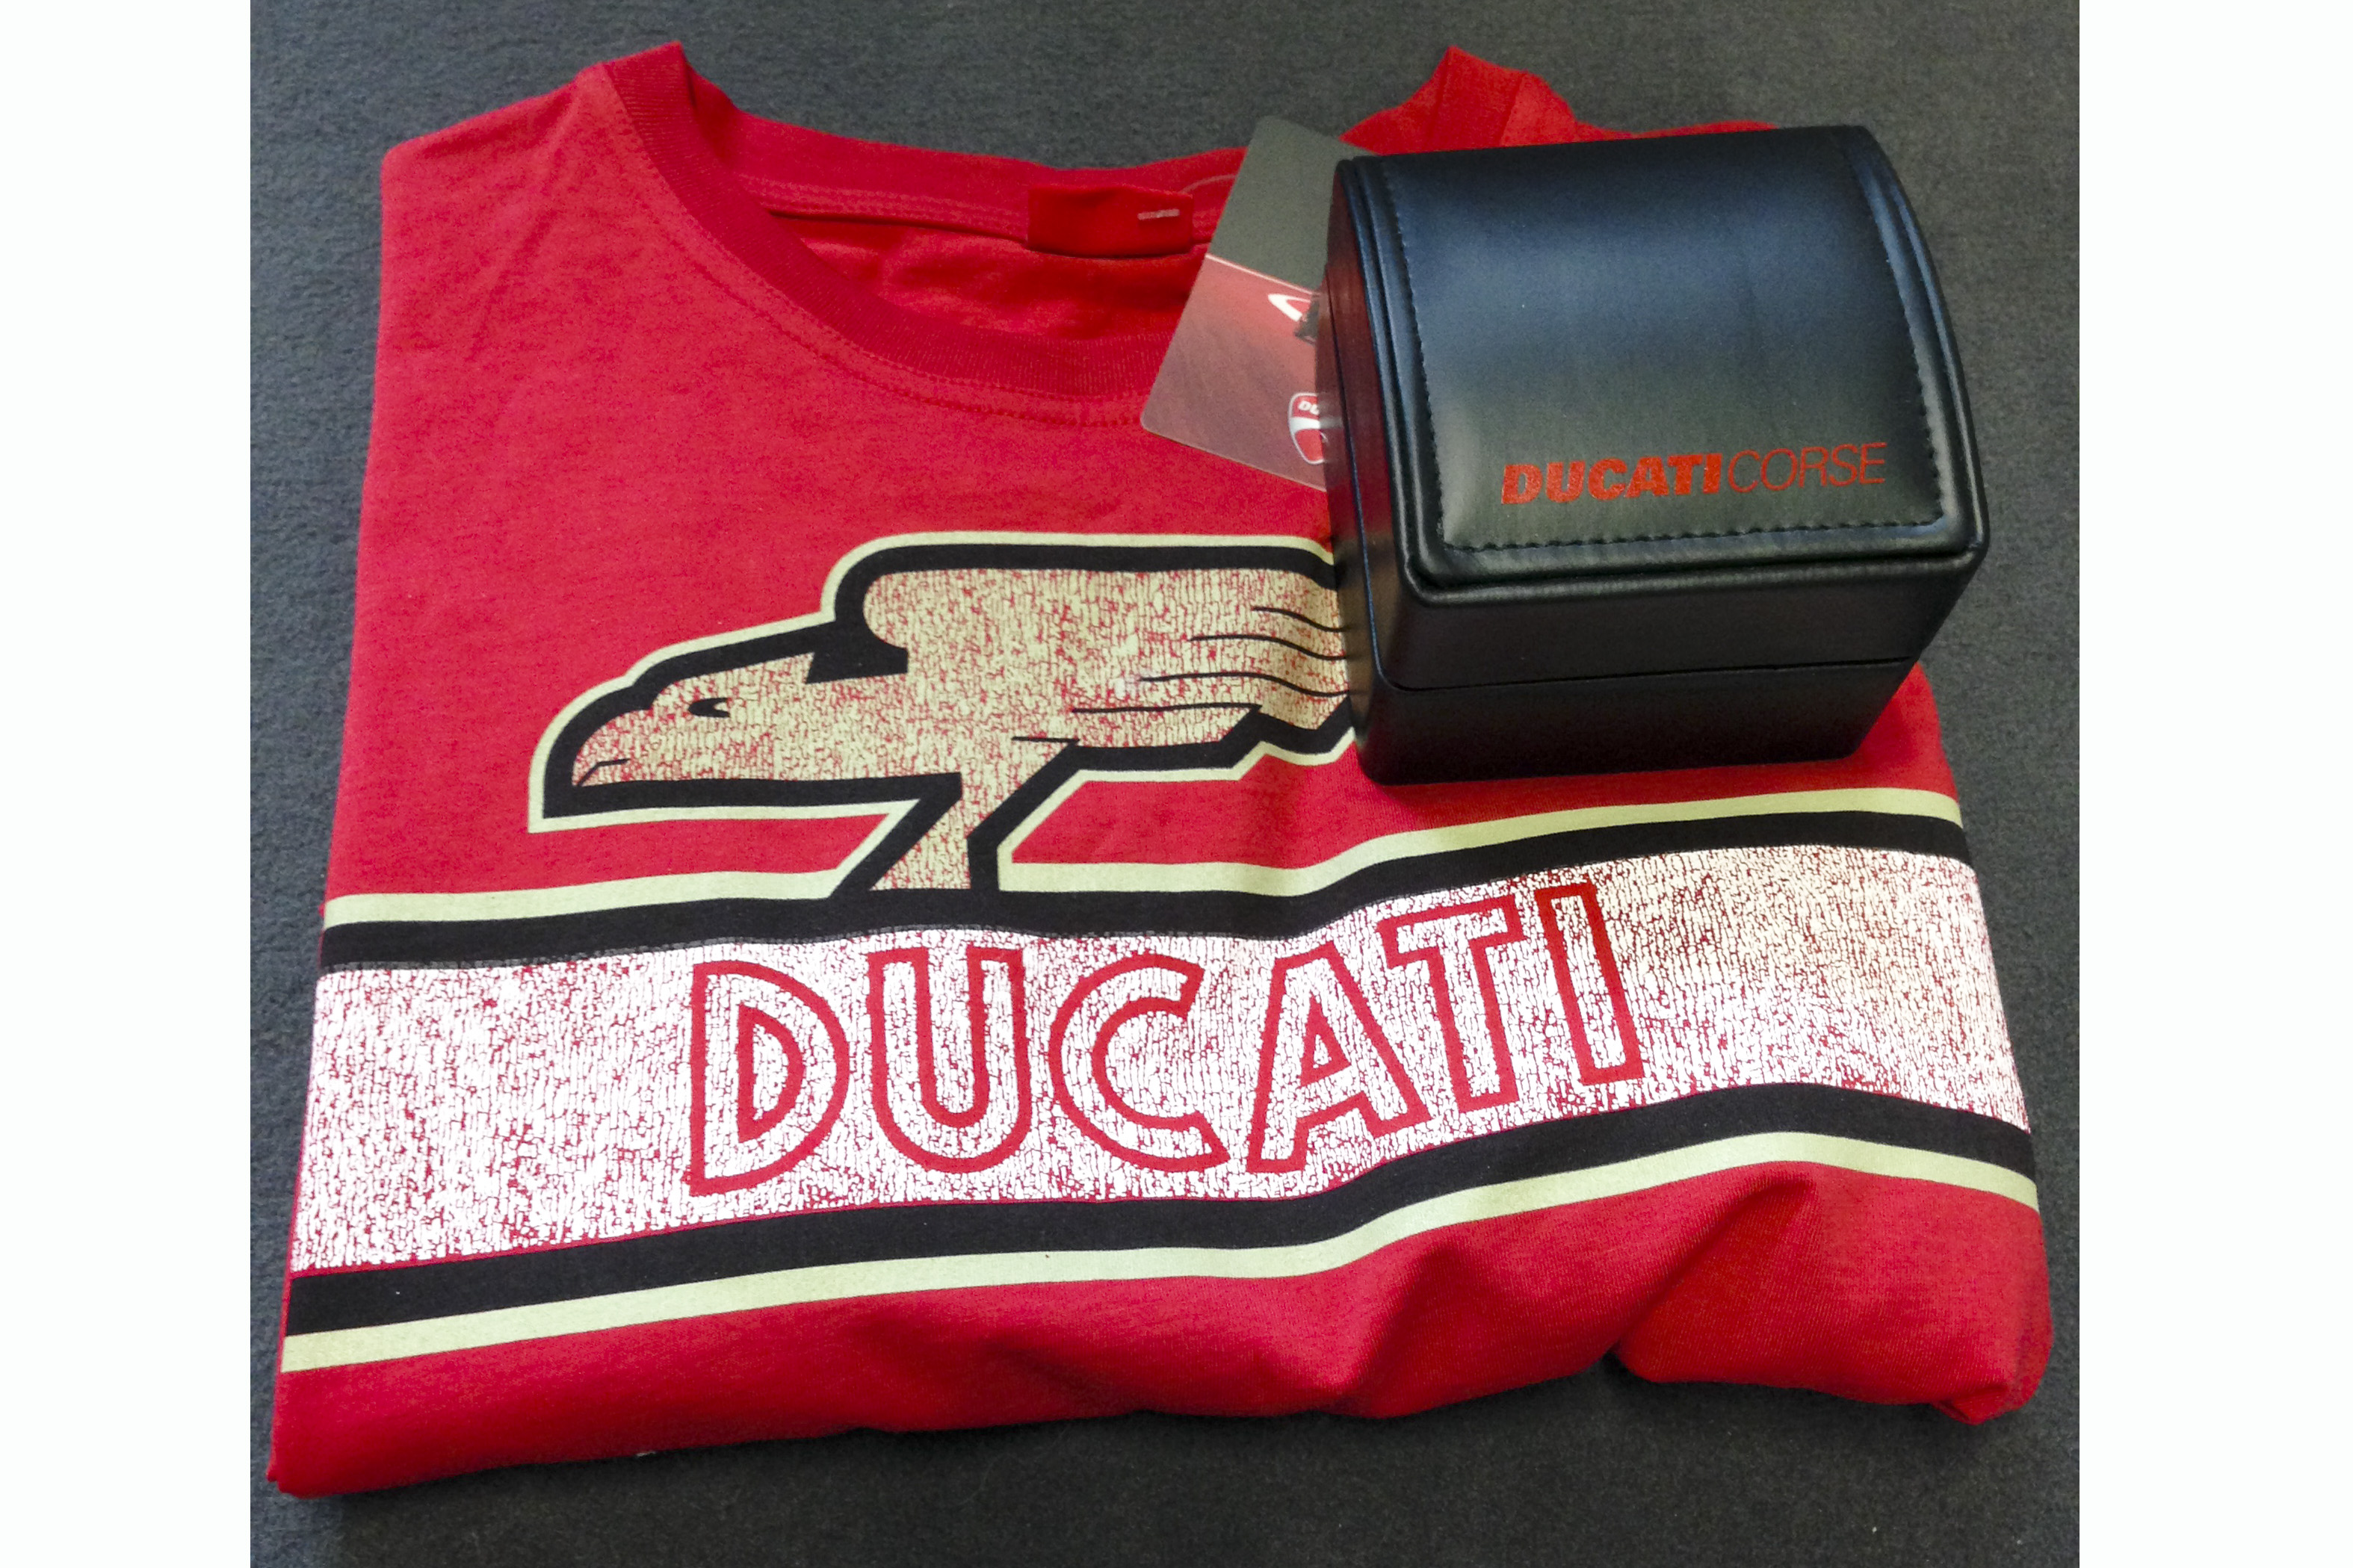 Review a Ducati, win an official Ducati watch worth £160